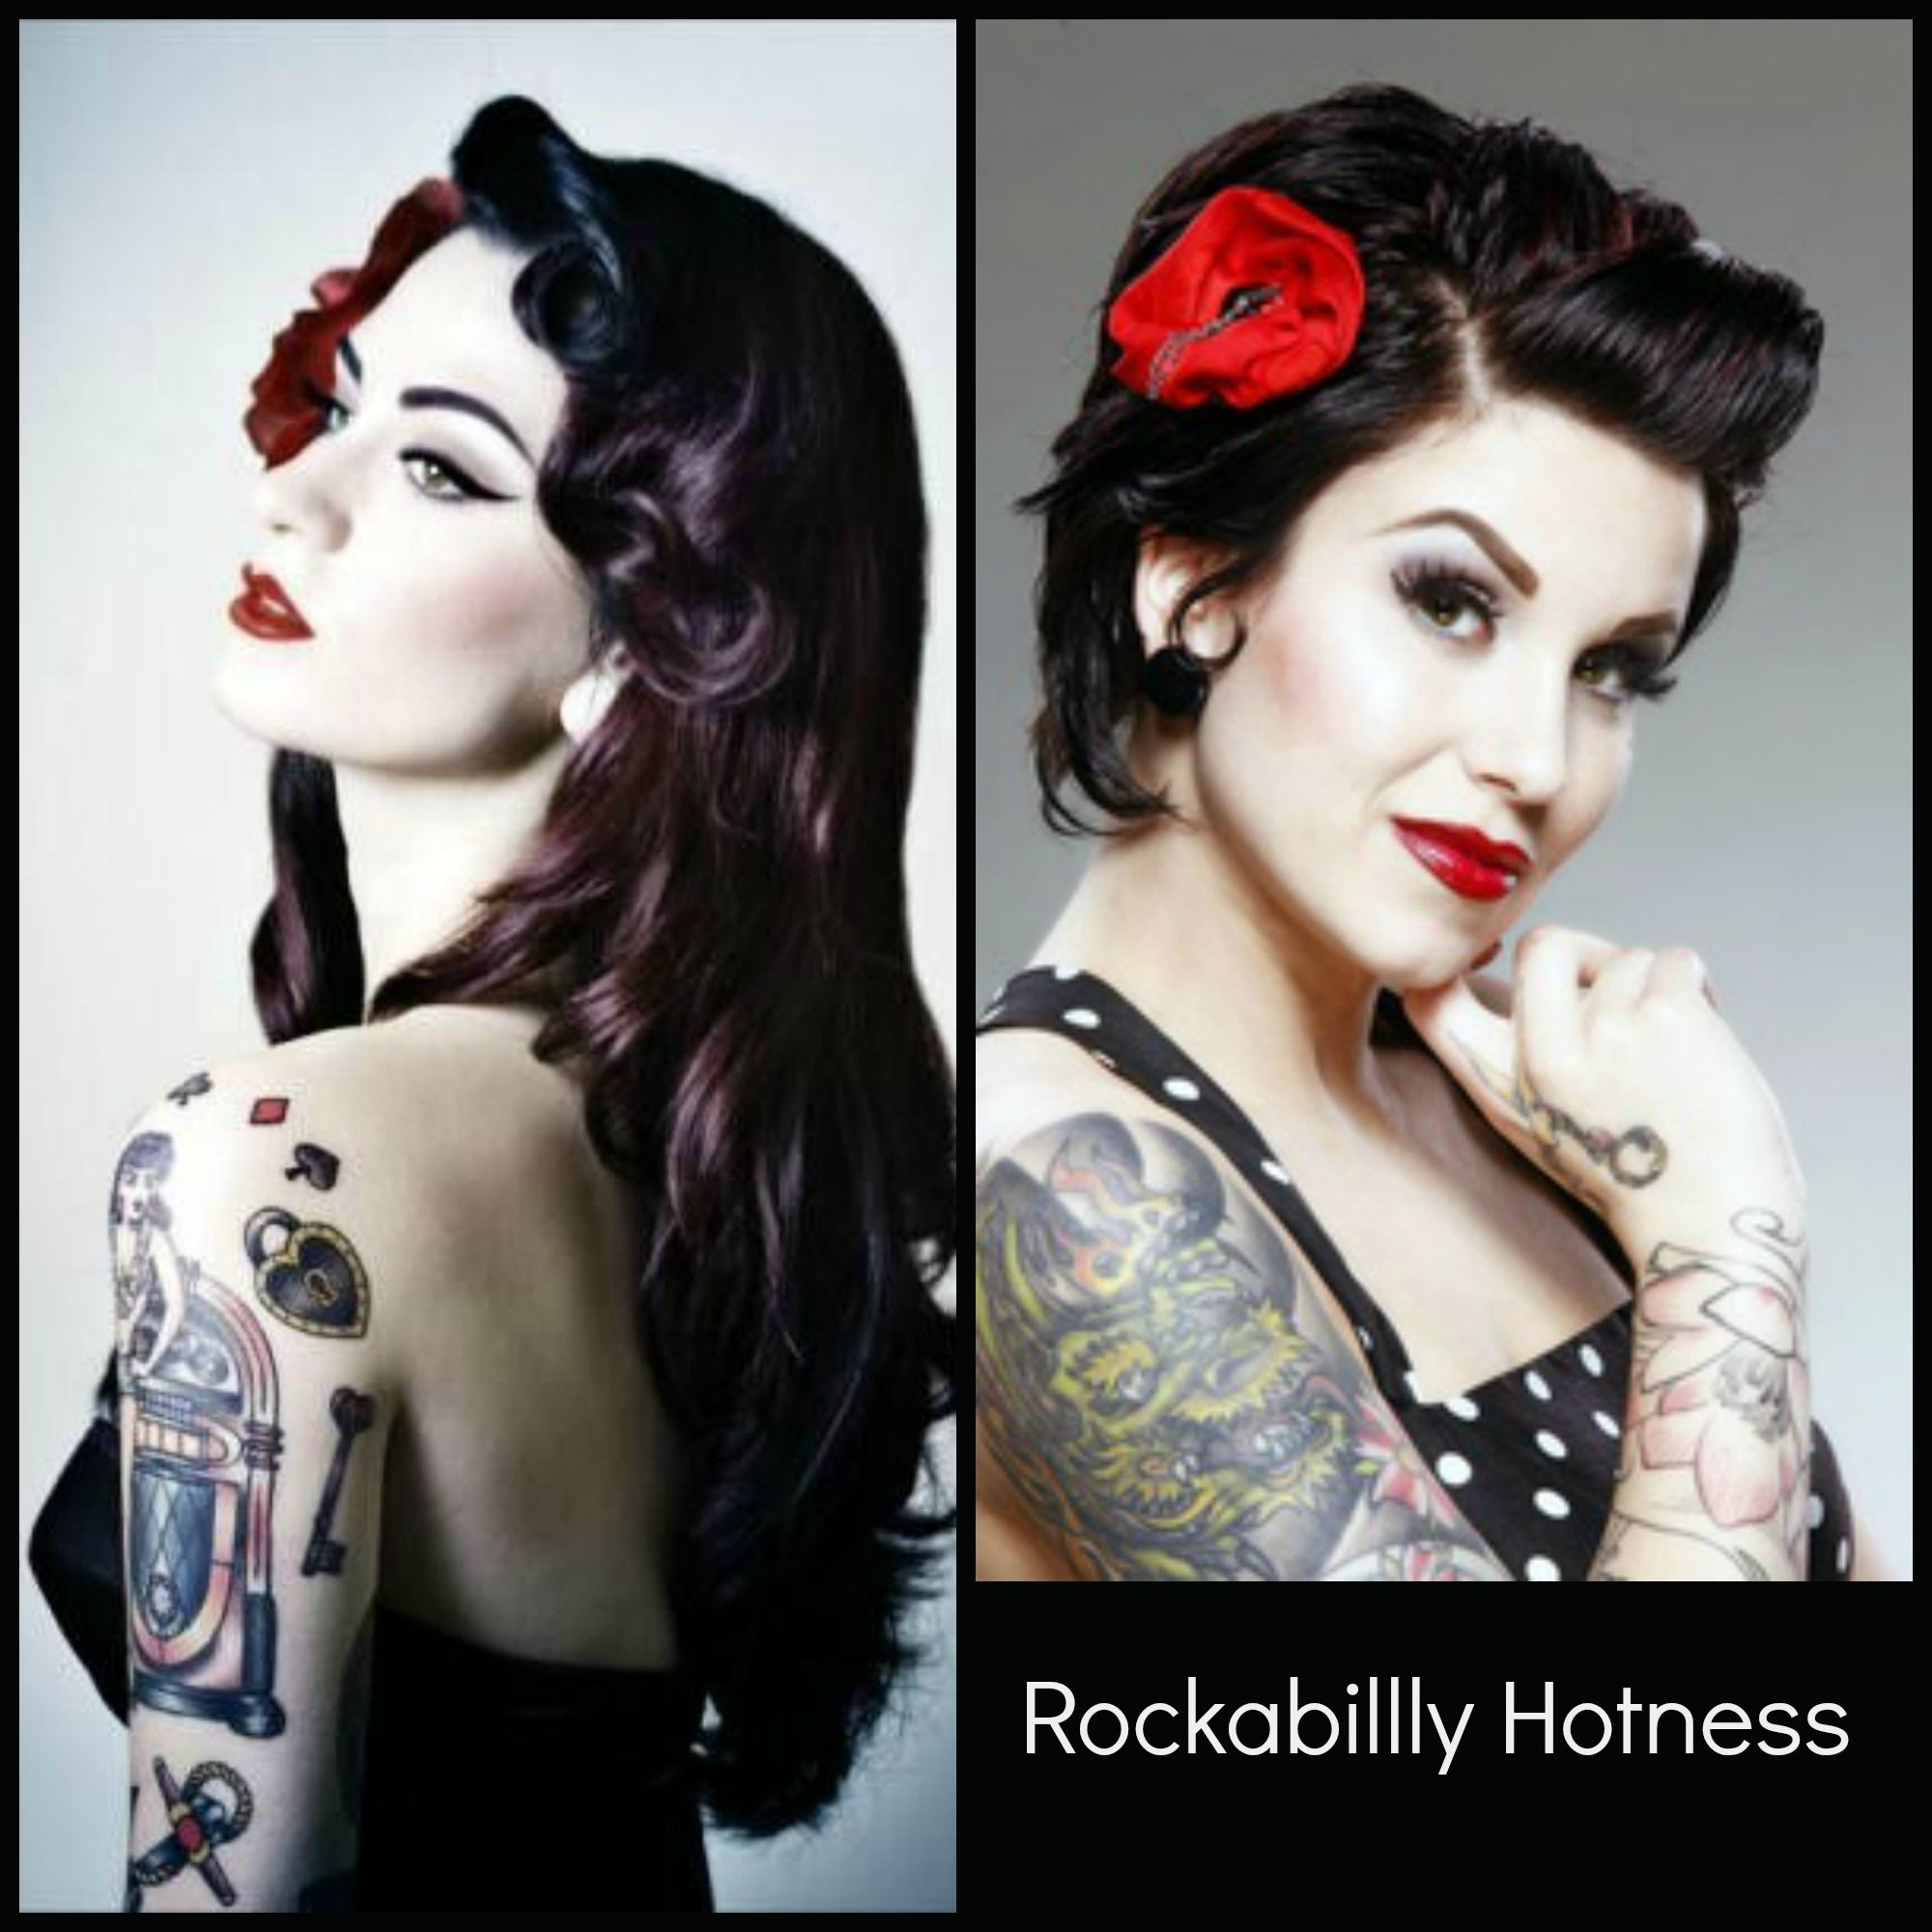 long hair style rockabilly hair pinup hair psychobilly hair | pin